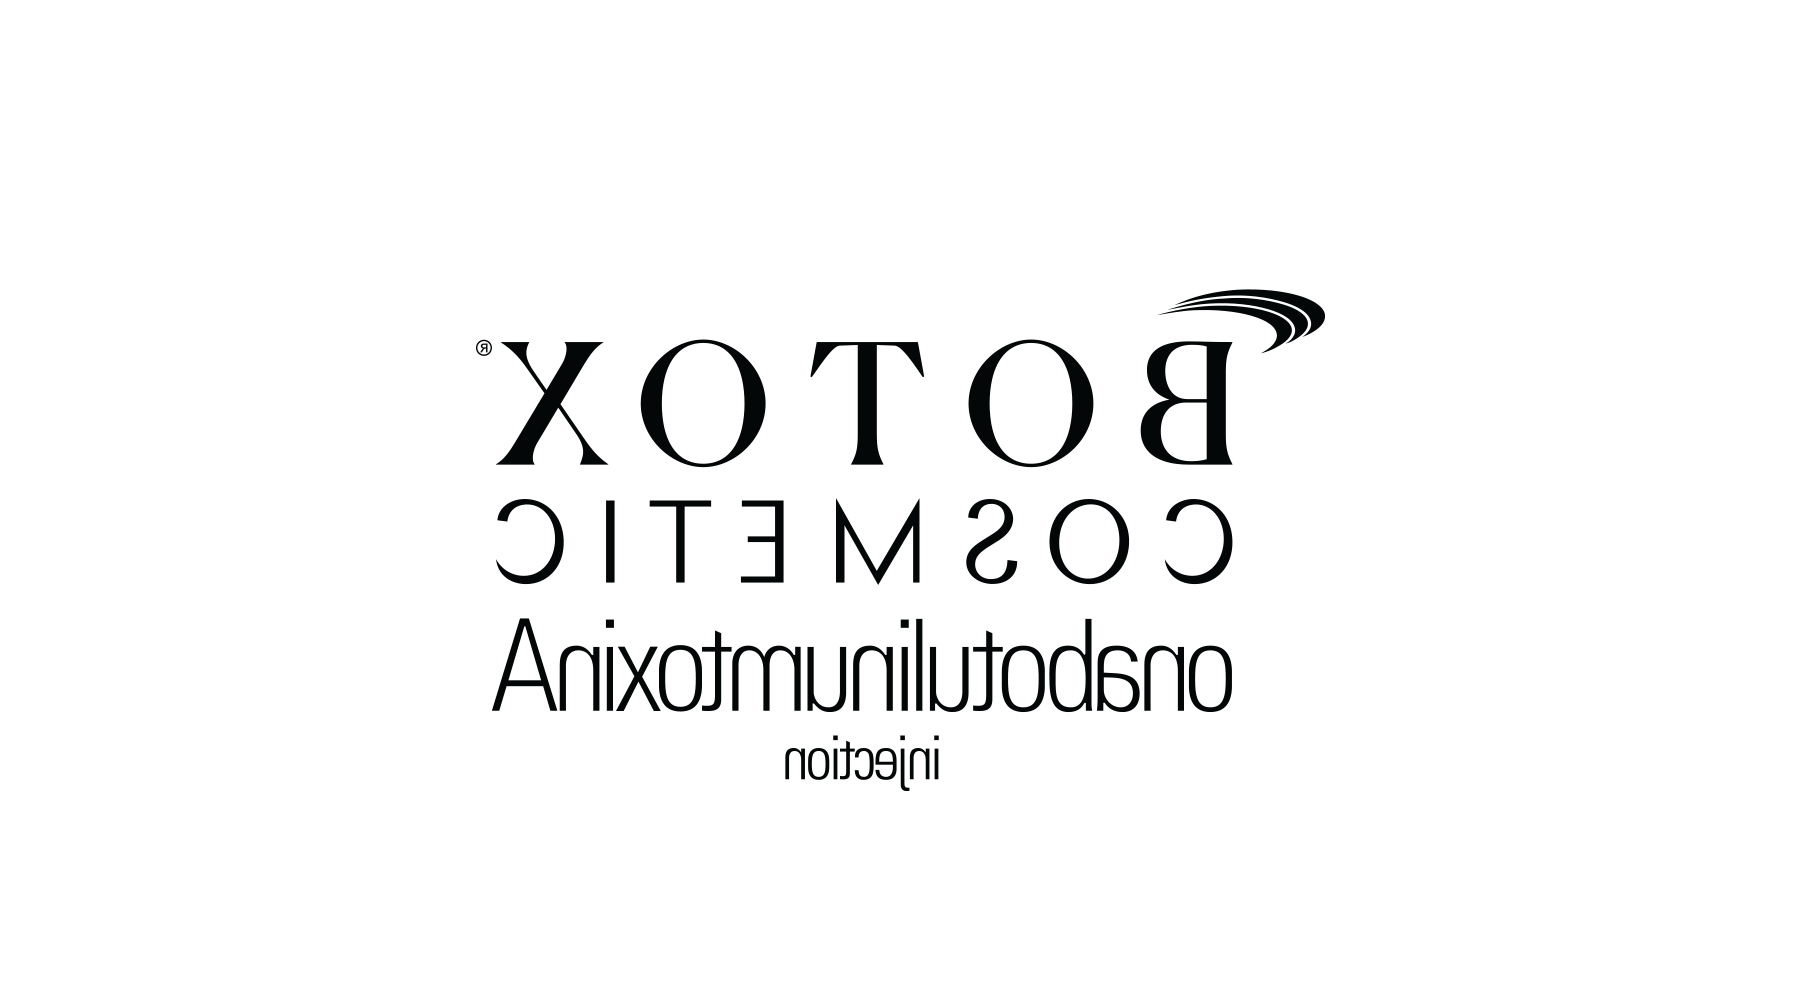 Logo for BOTOX Cosmetic onabotulinumtoxinA injection